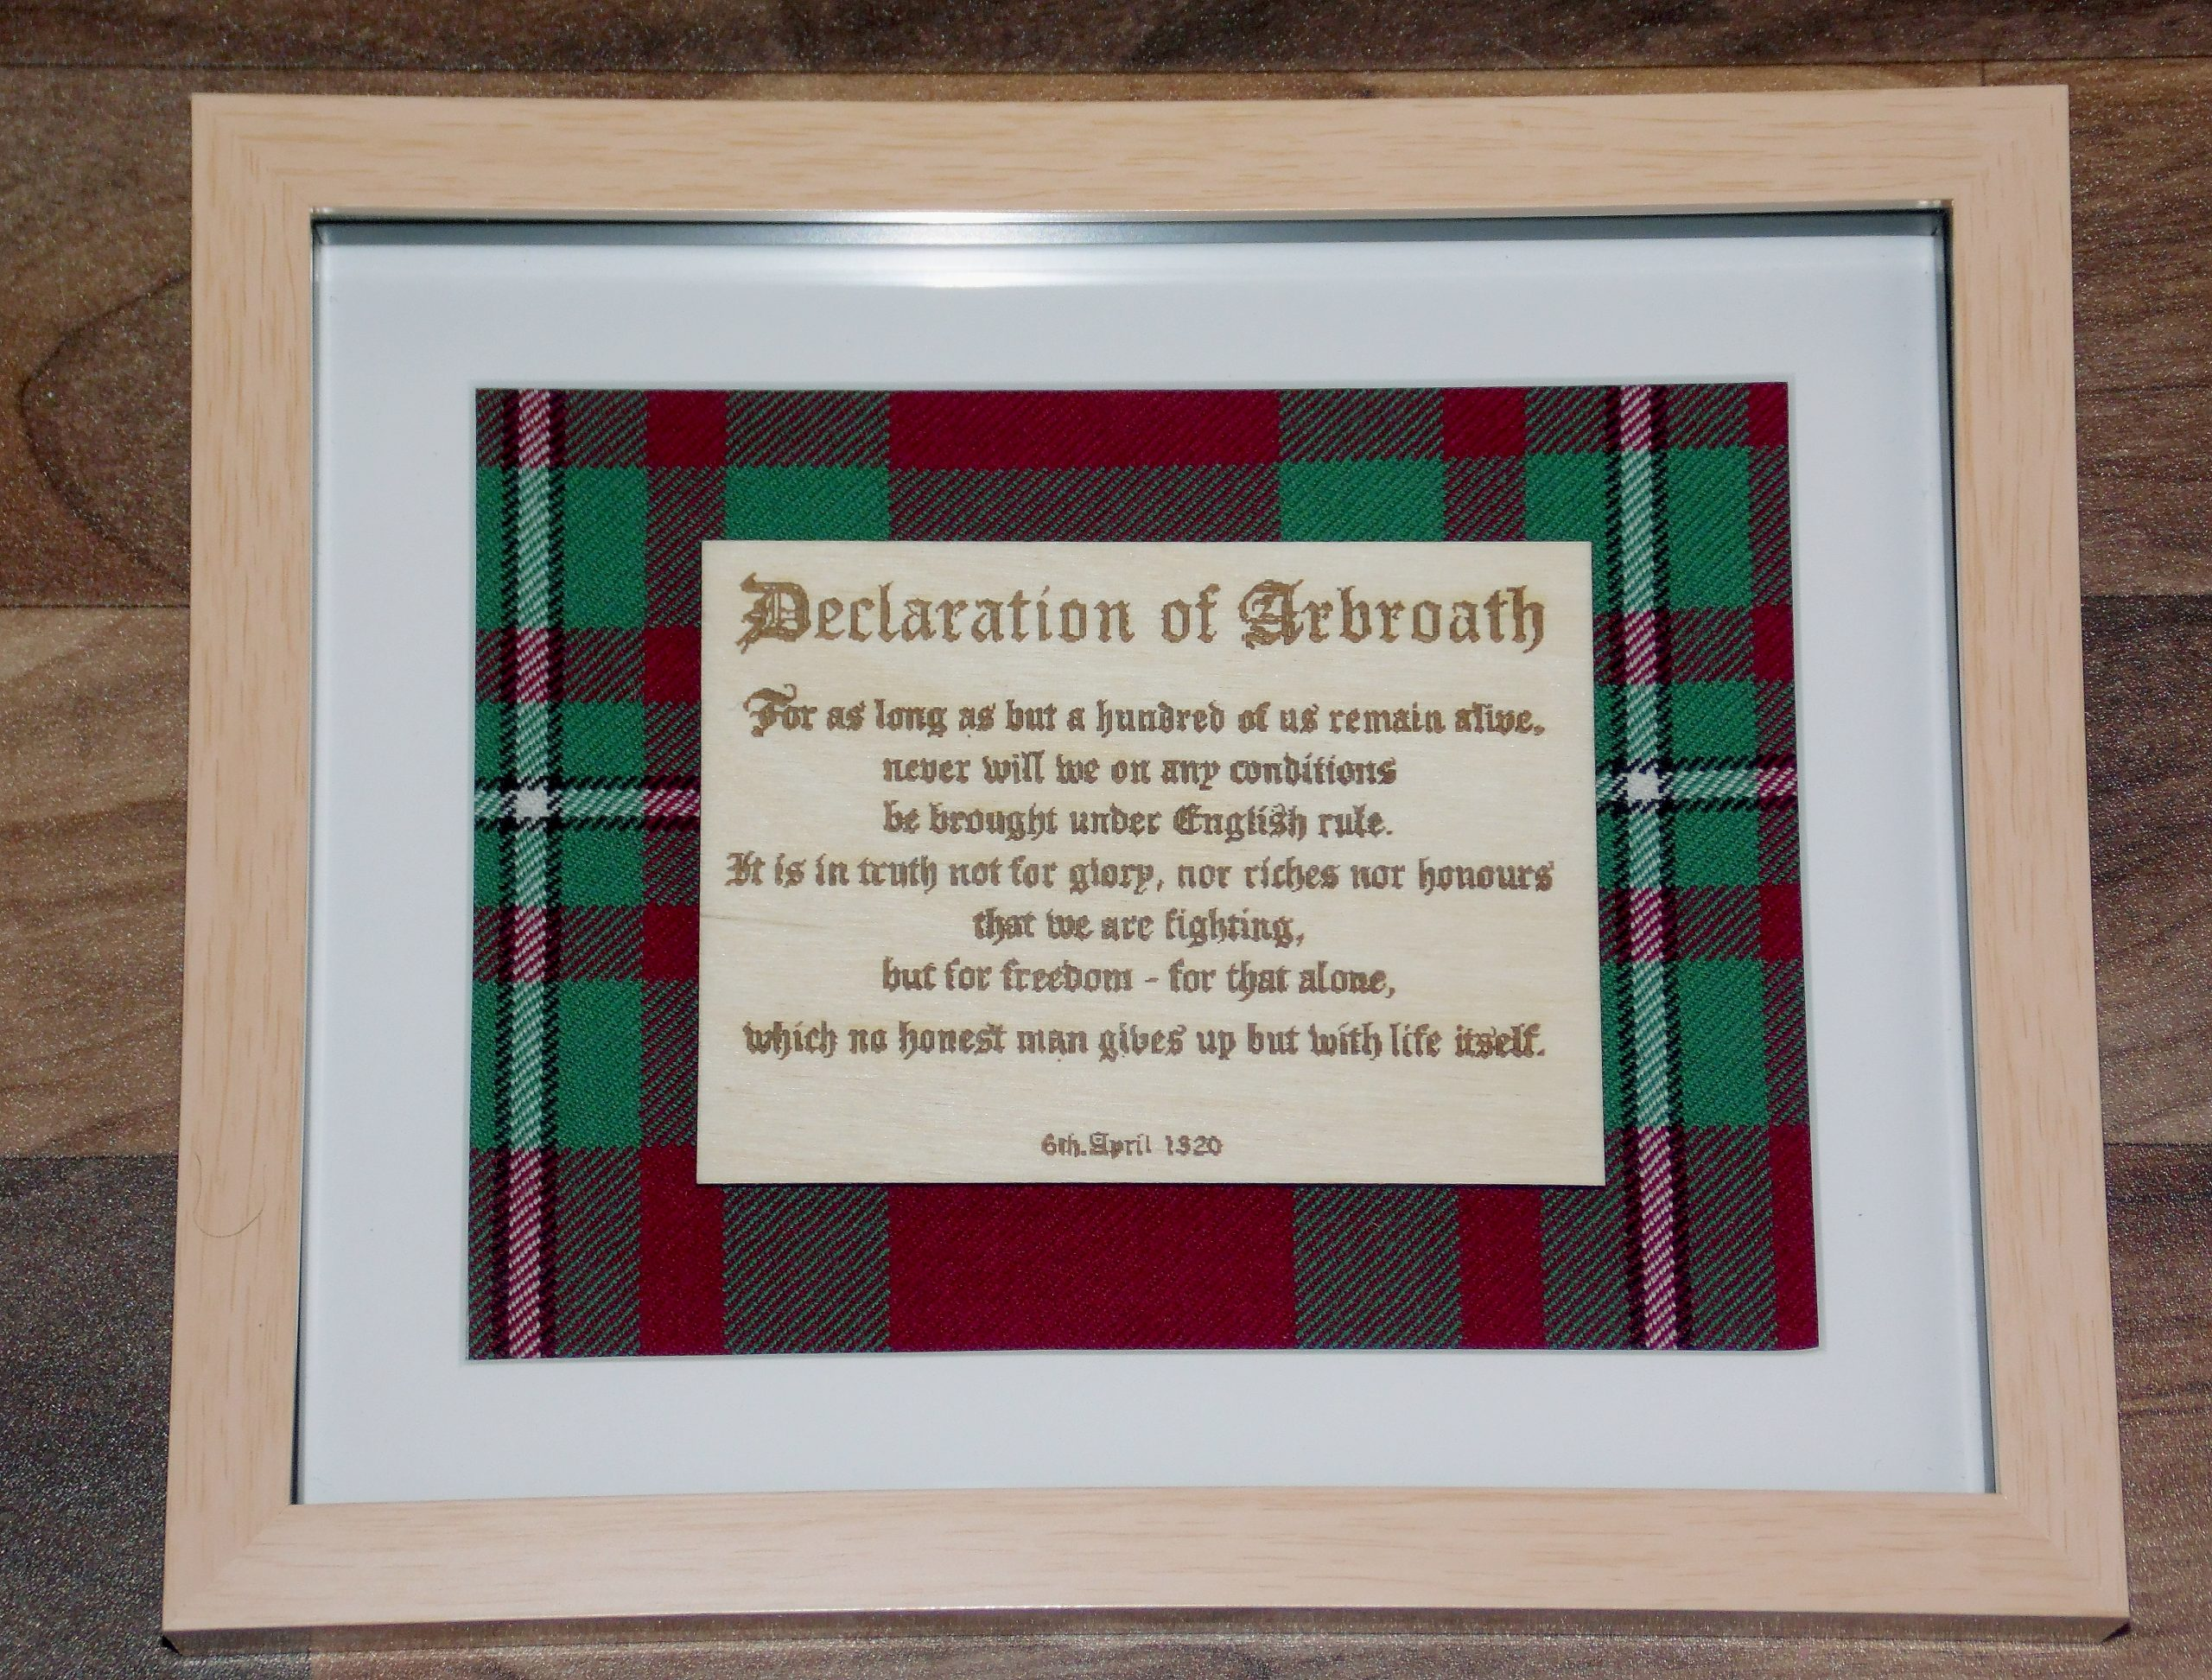 Declaration of Arbroath extract engraving